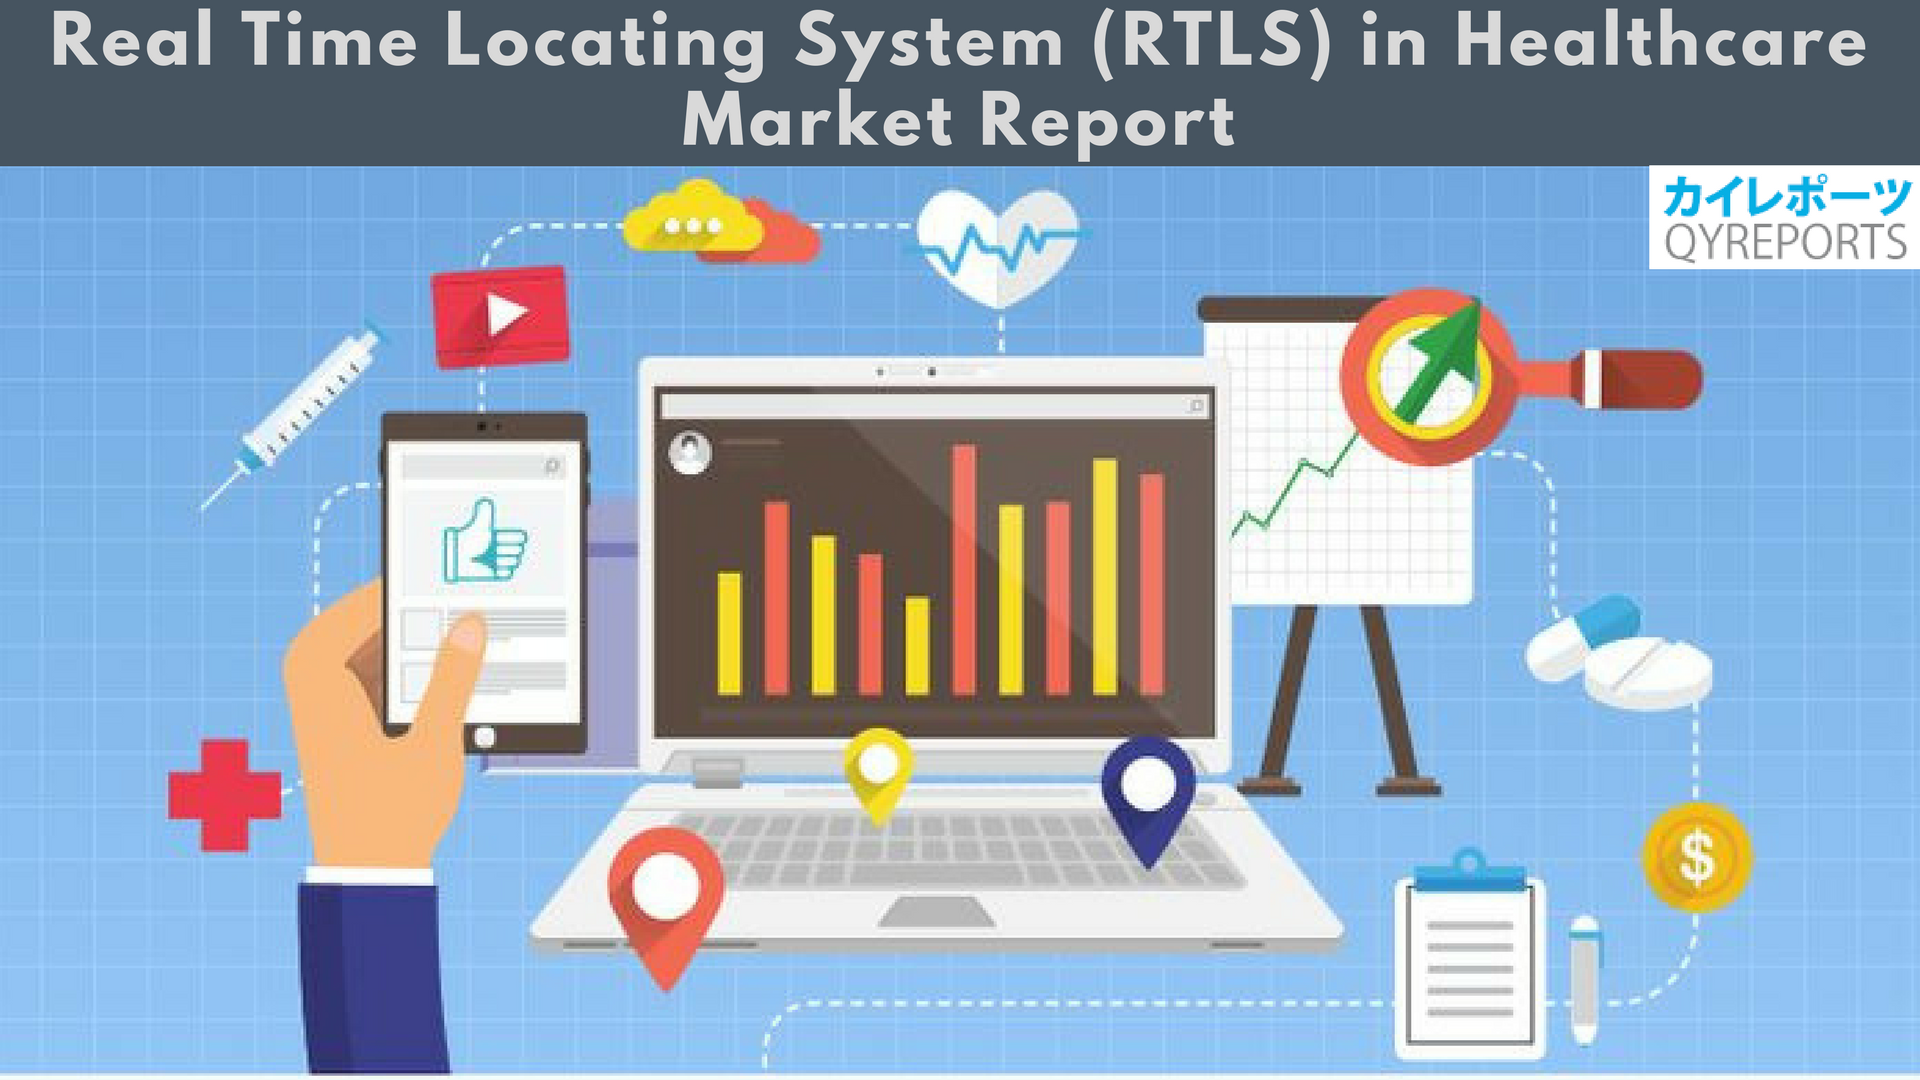 Real Time Locating System (RTLS) in Healthcare Market Is